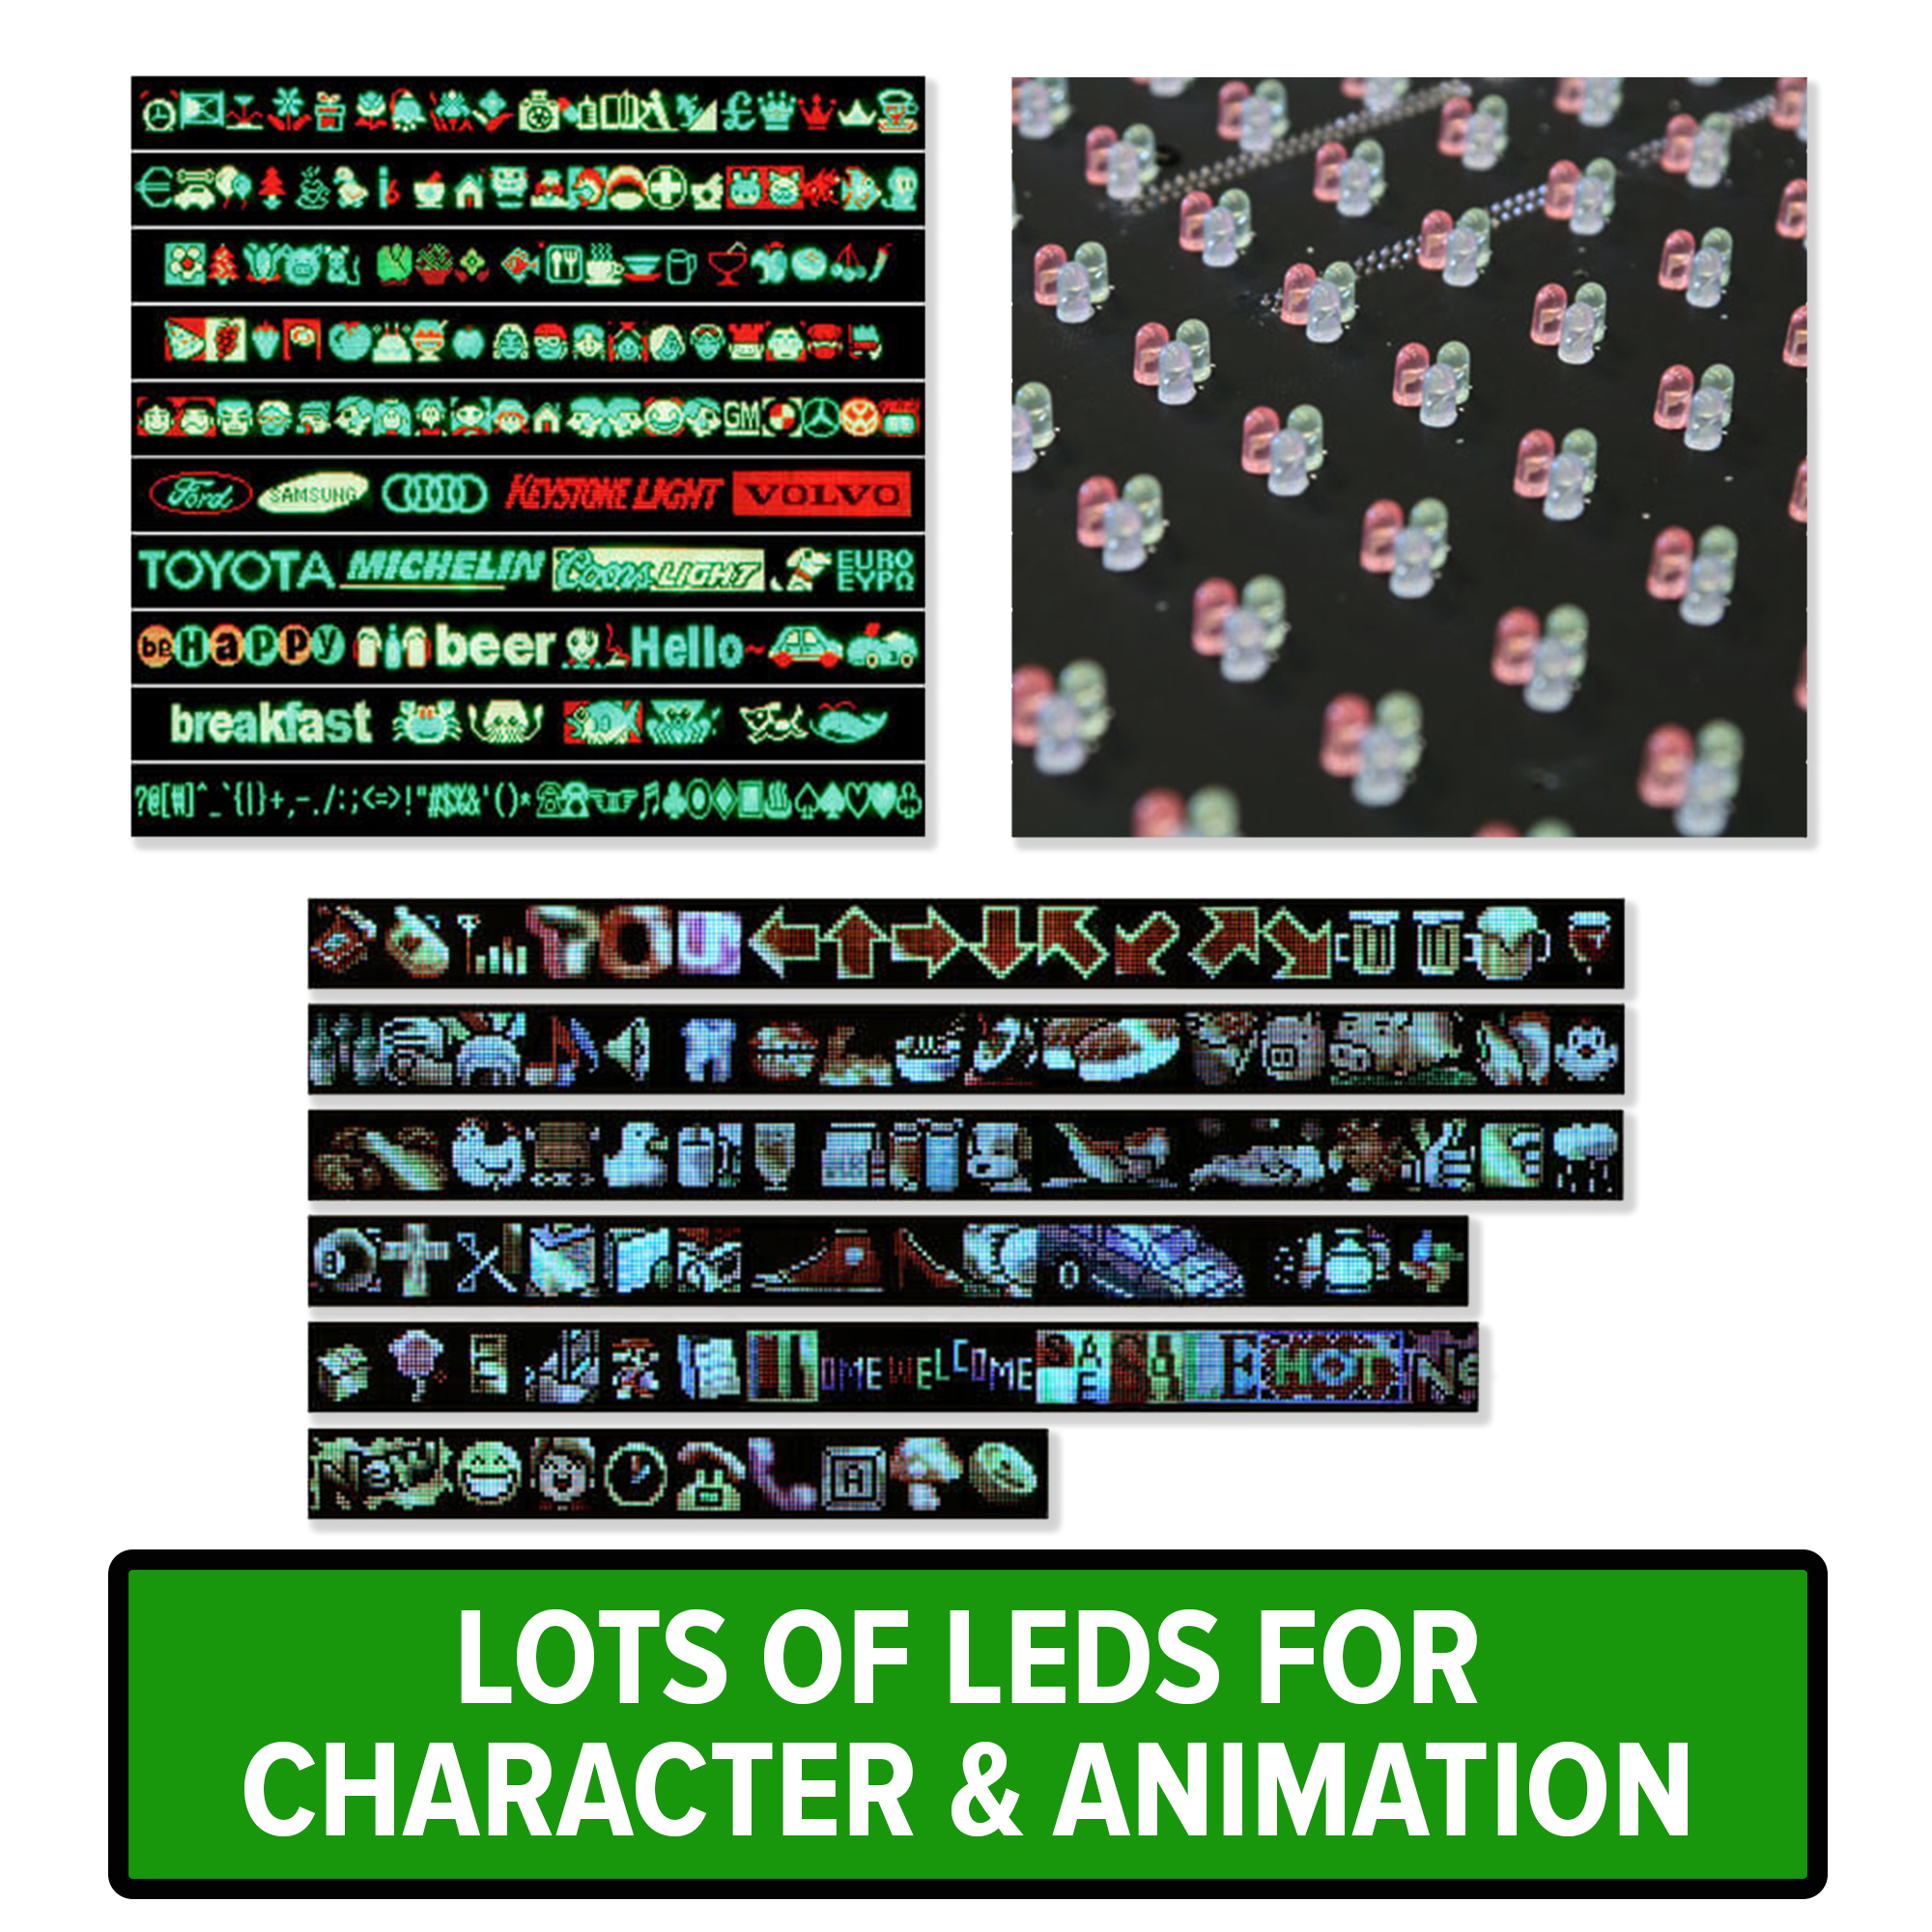 Lots-of-leds